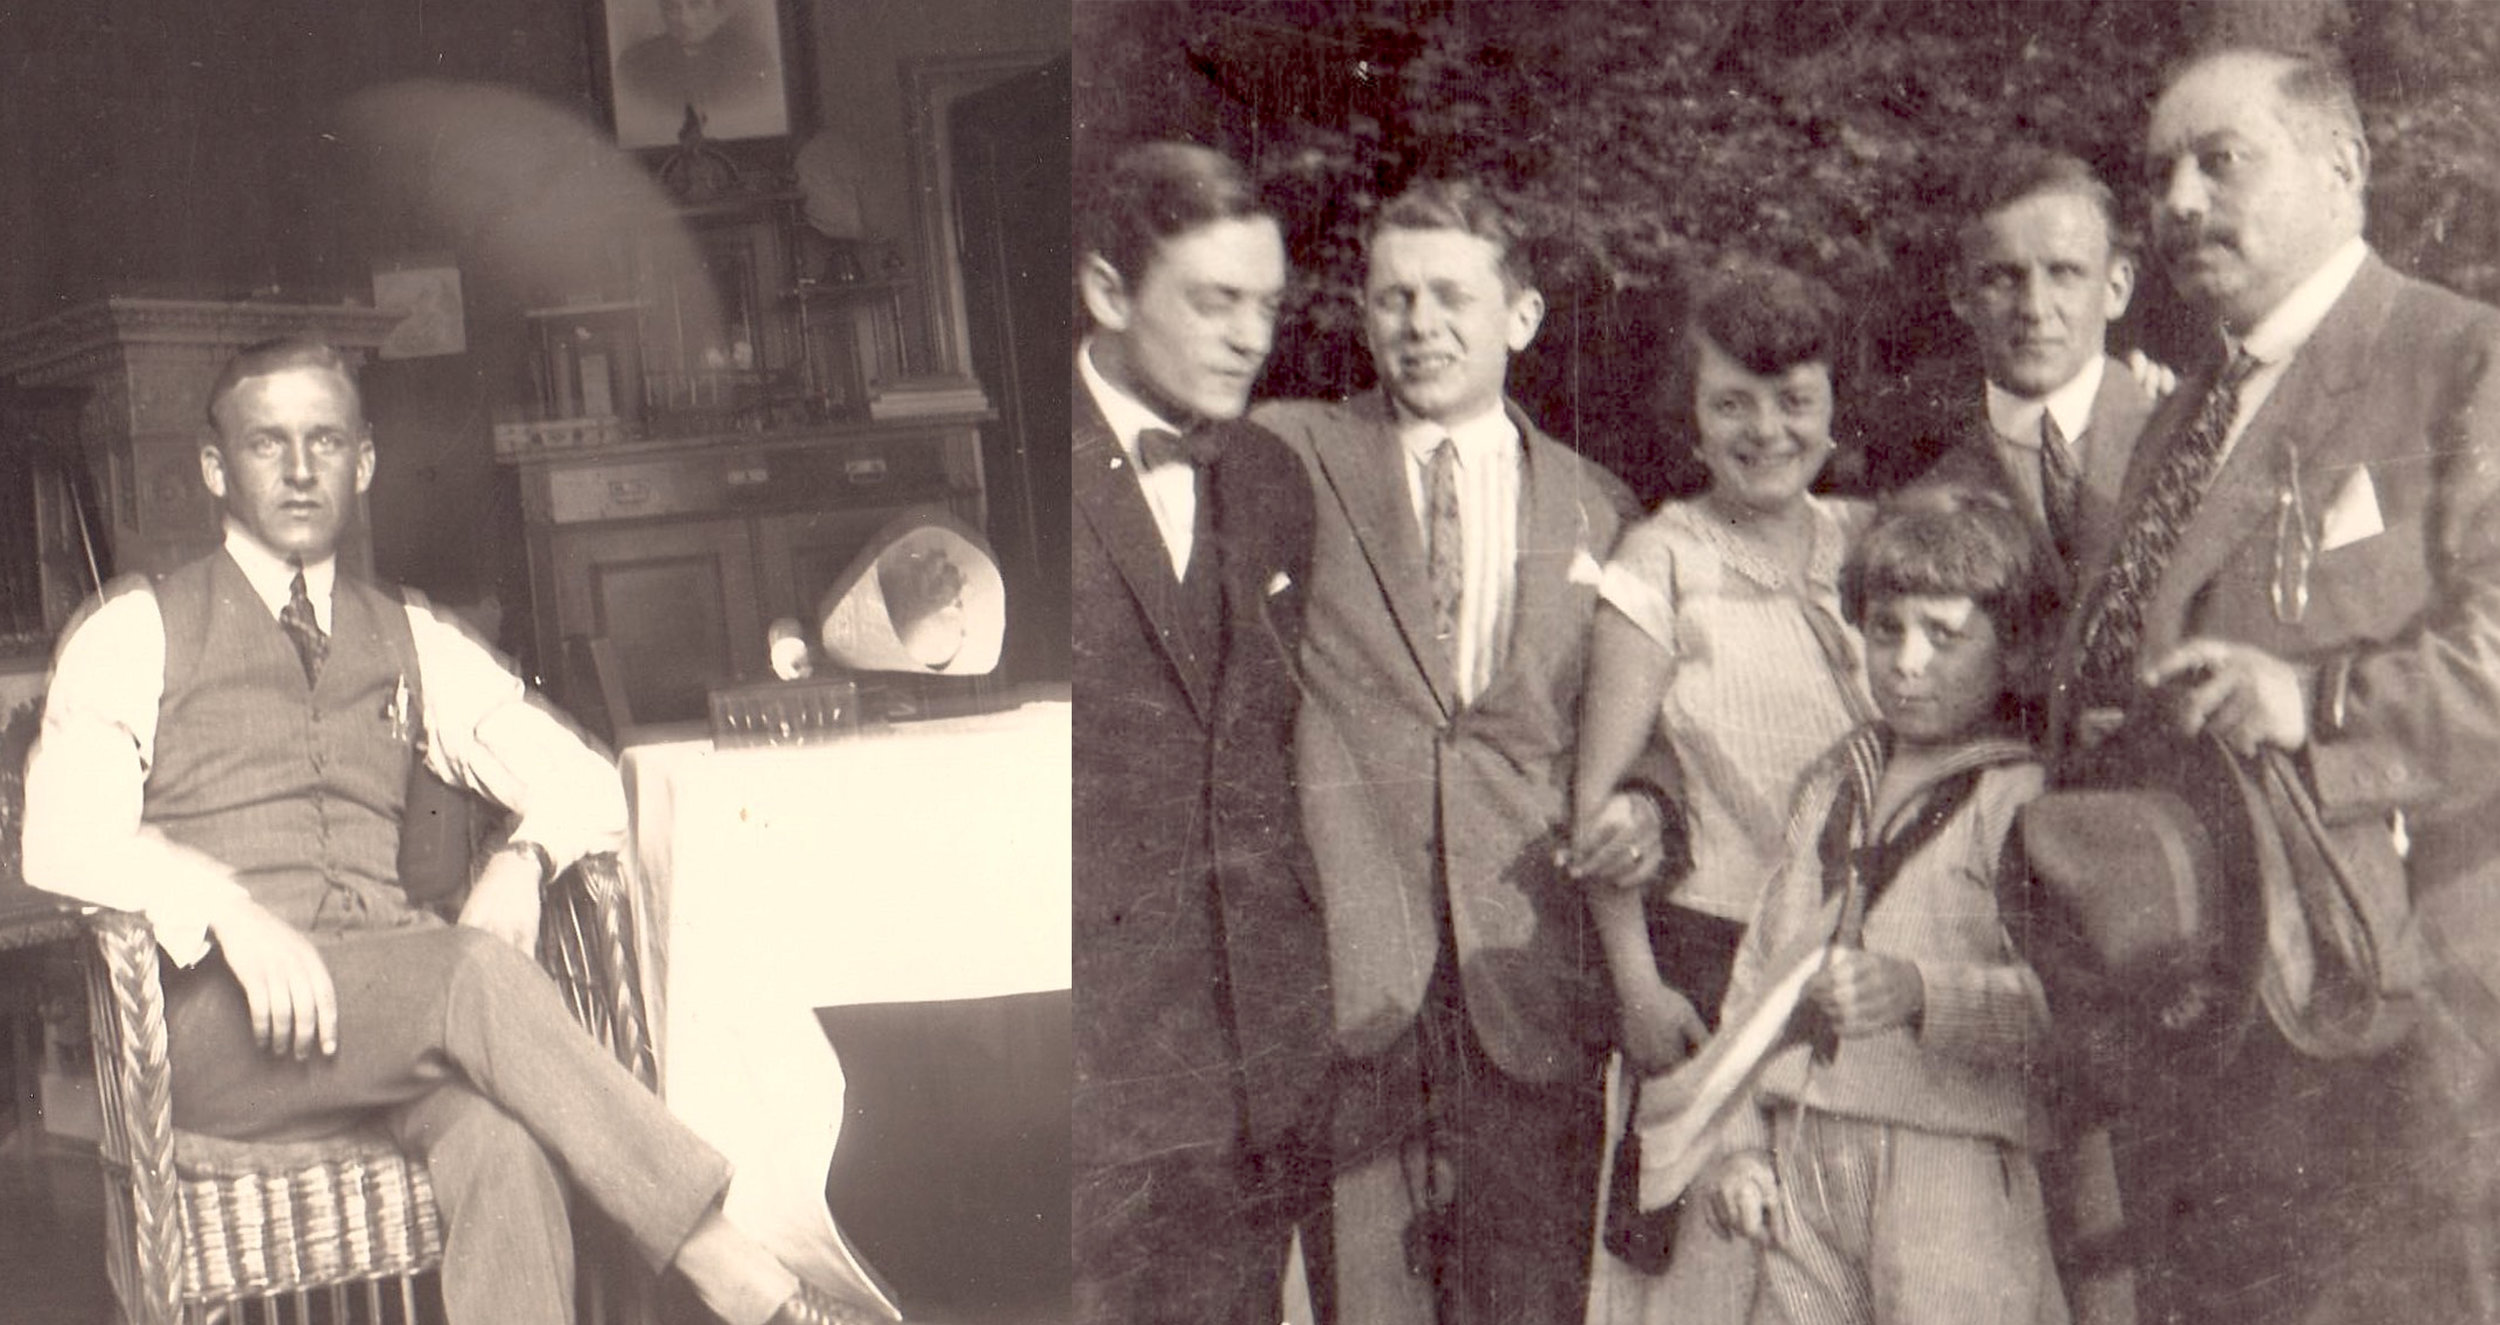 1924 Left:  Elon Andersen, Elsa's Swedish beau, in the Stern apartment.  Right:  the family picture includes brother Günter, brother Gerhart, Elsa, young brother Joe (Buby), Elon, and Papa (Willy).